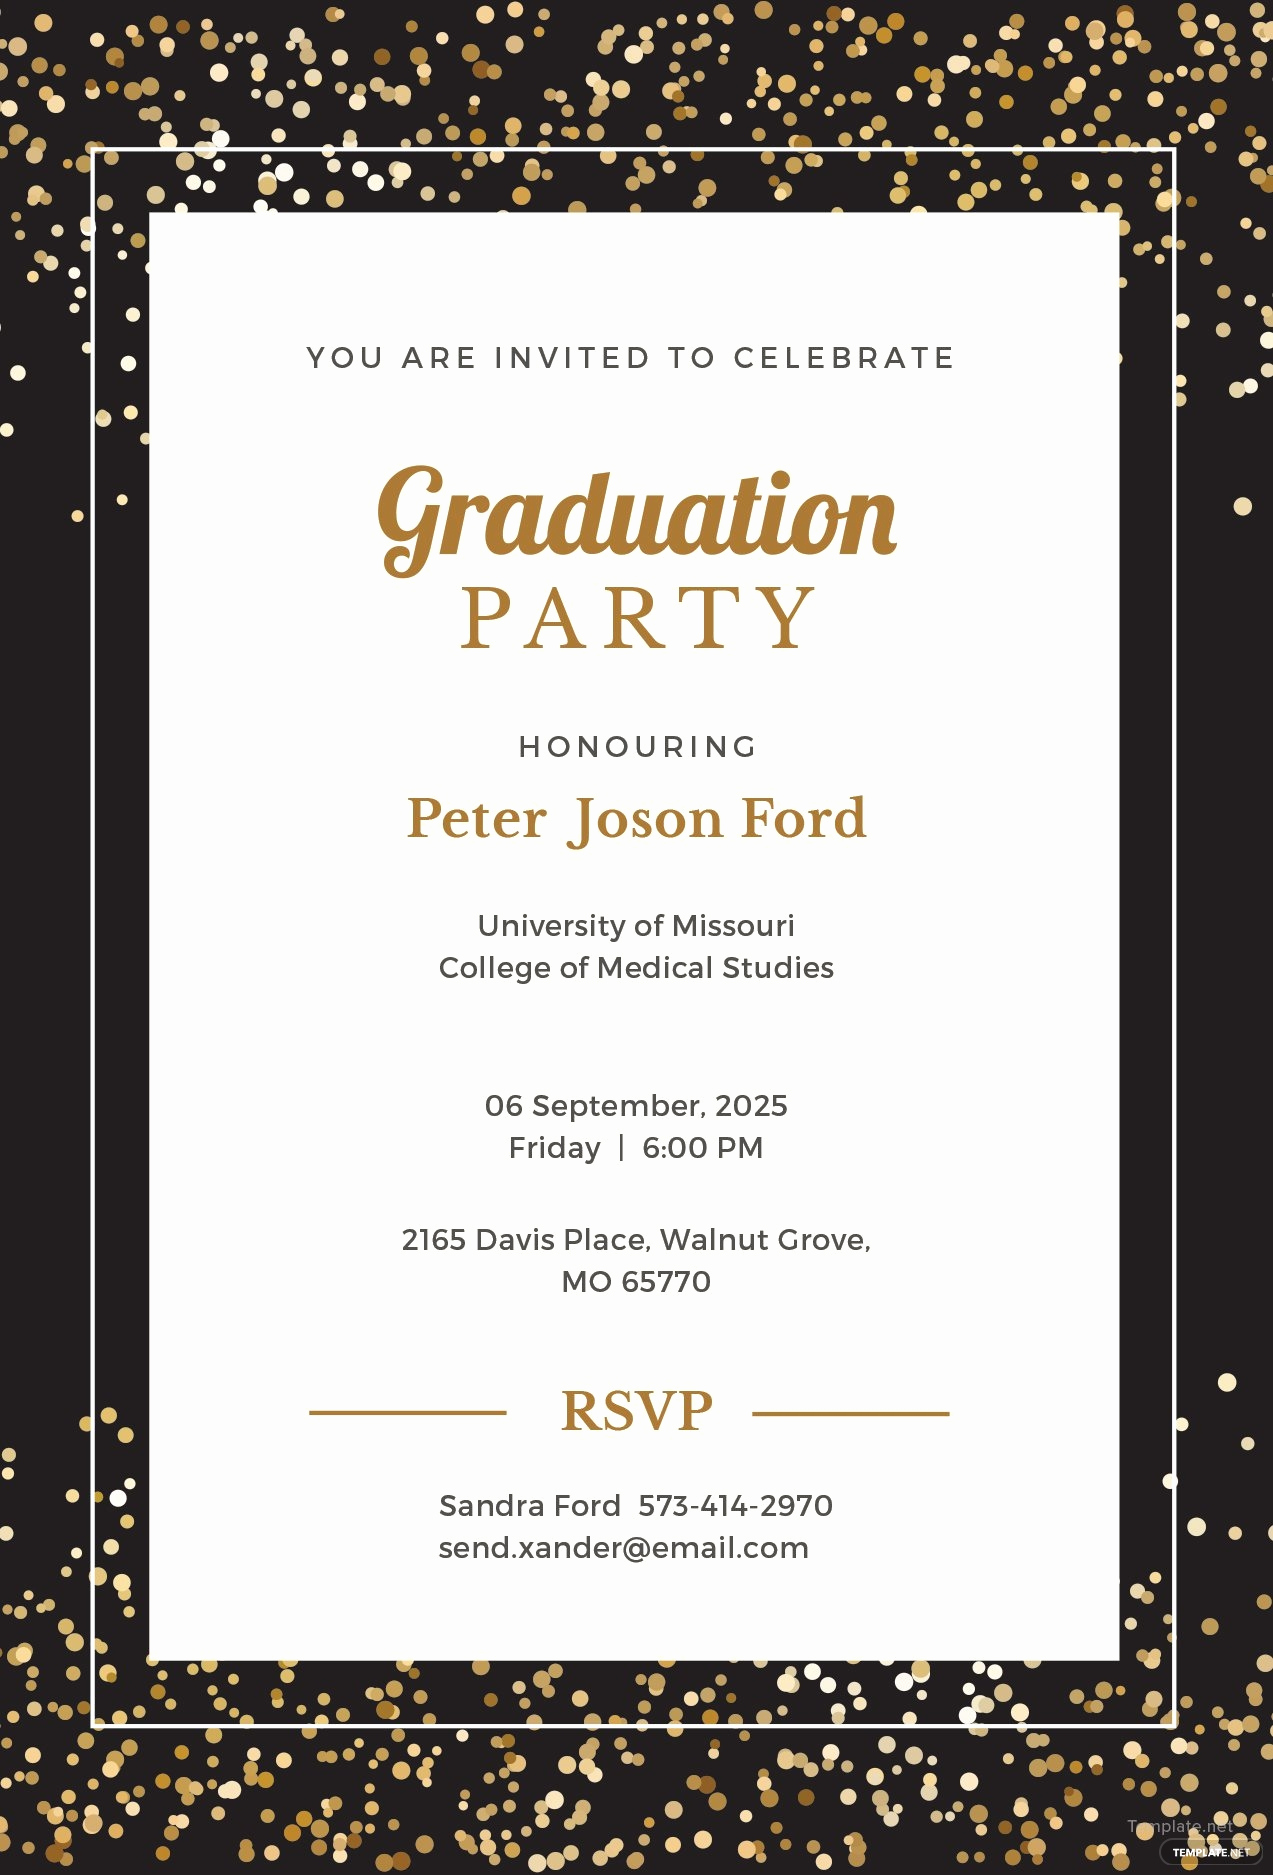 Graduation Party Invitation Template Word Beautiful Free Simple Graduation Invitation Template In Microsoft